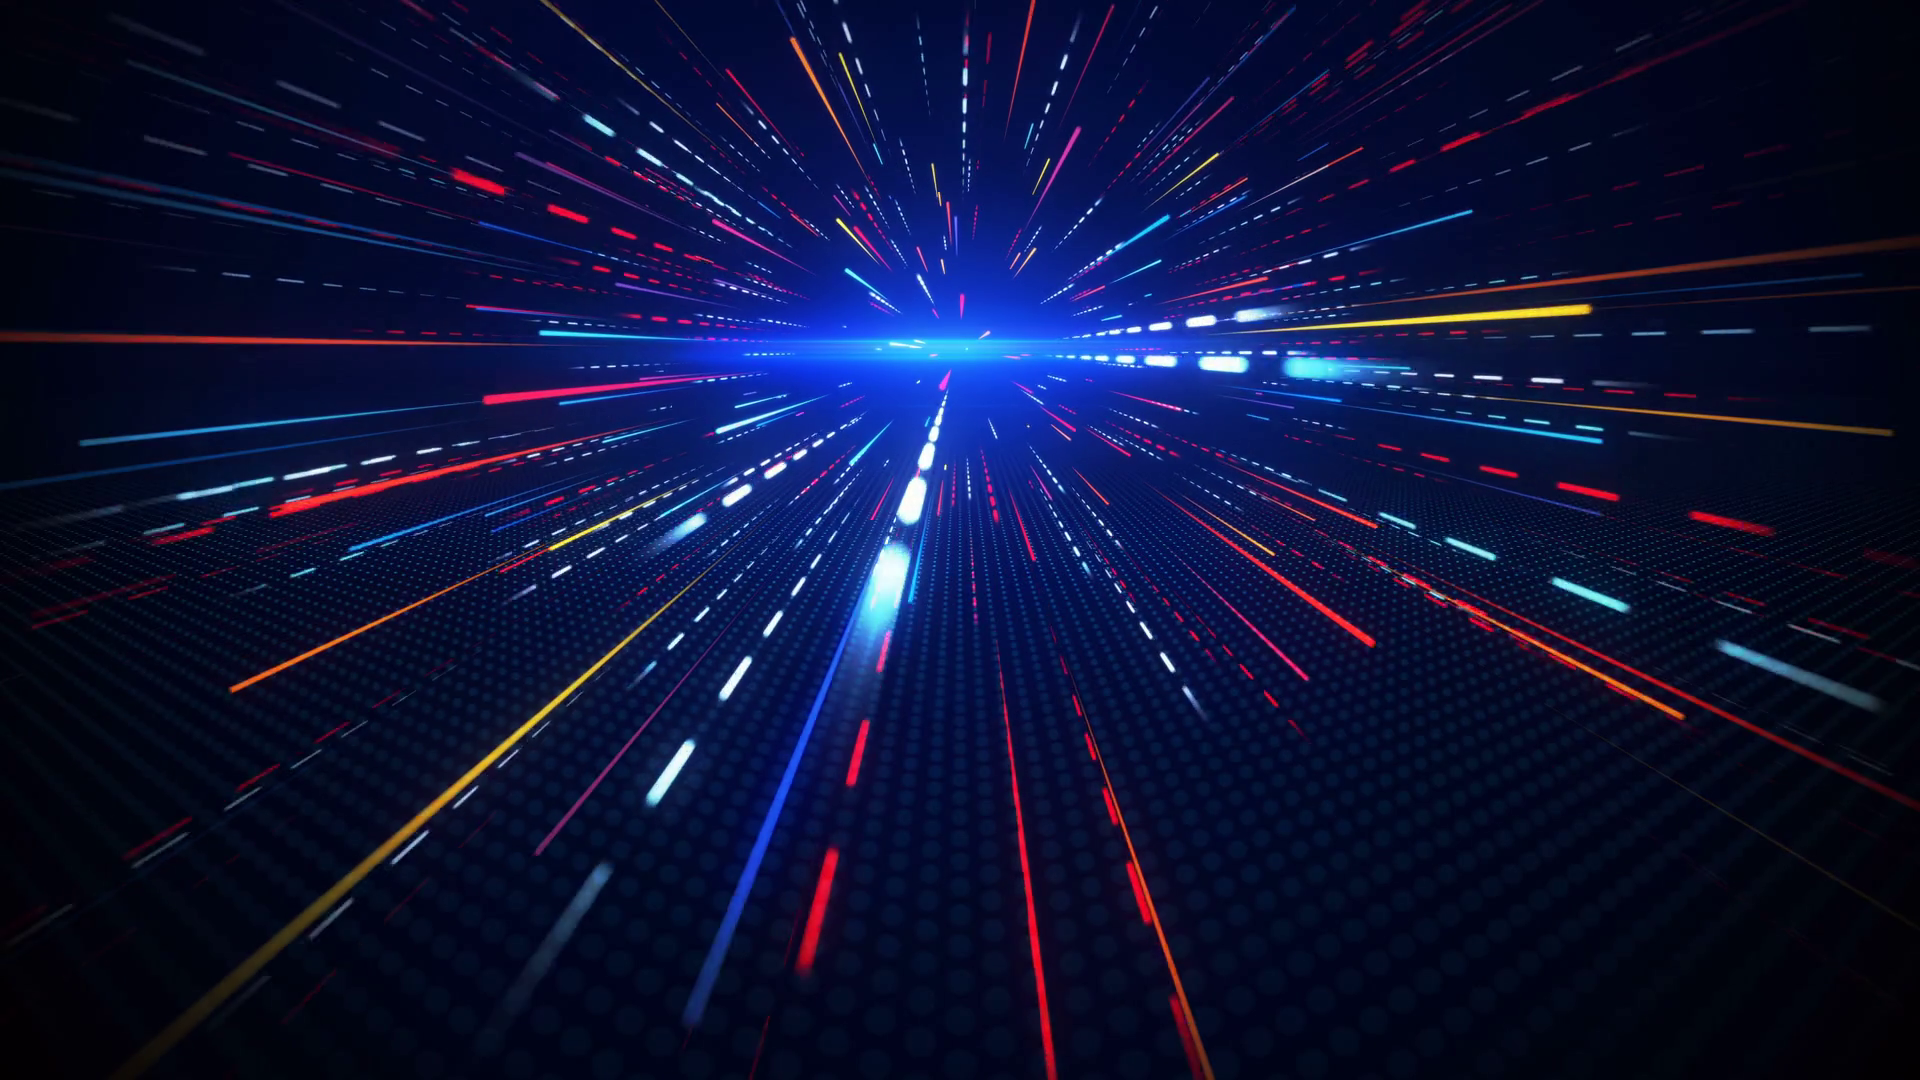 Motion blurred rays abstract loopable background 4k